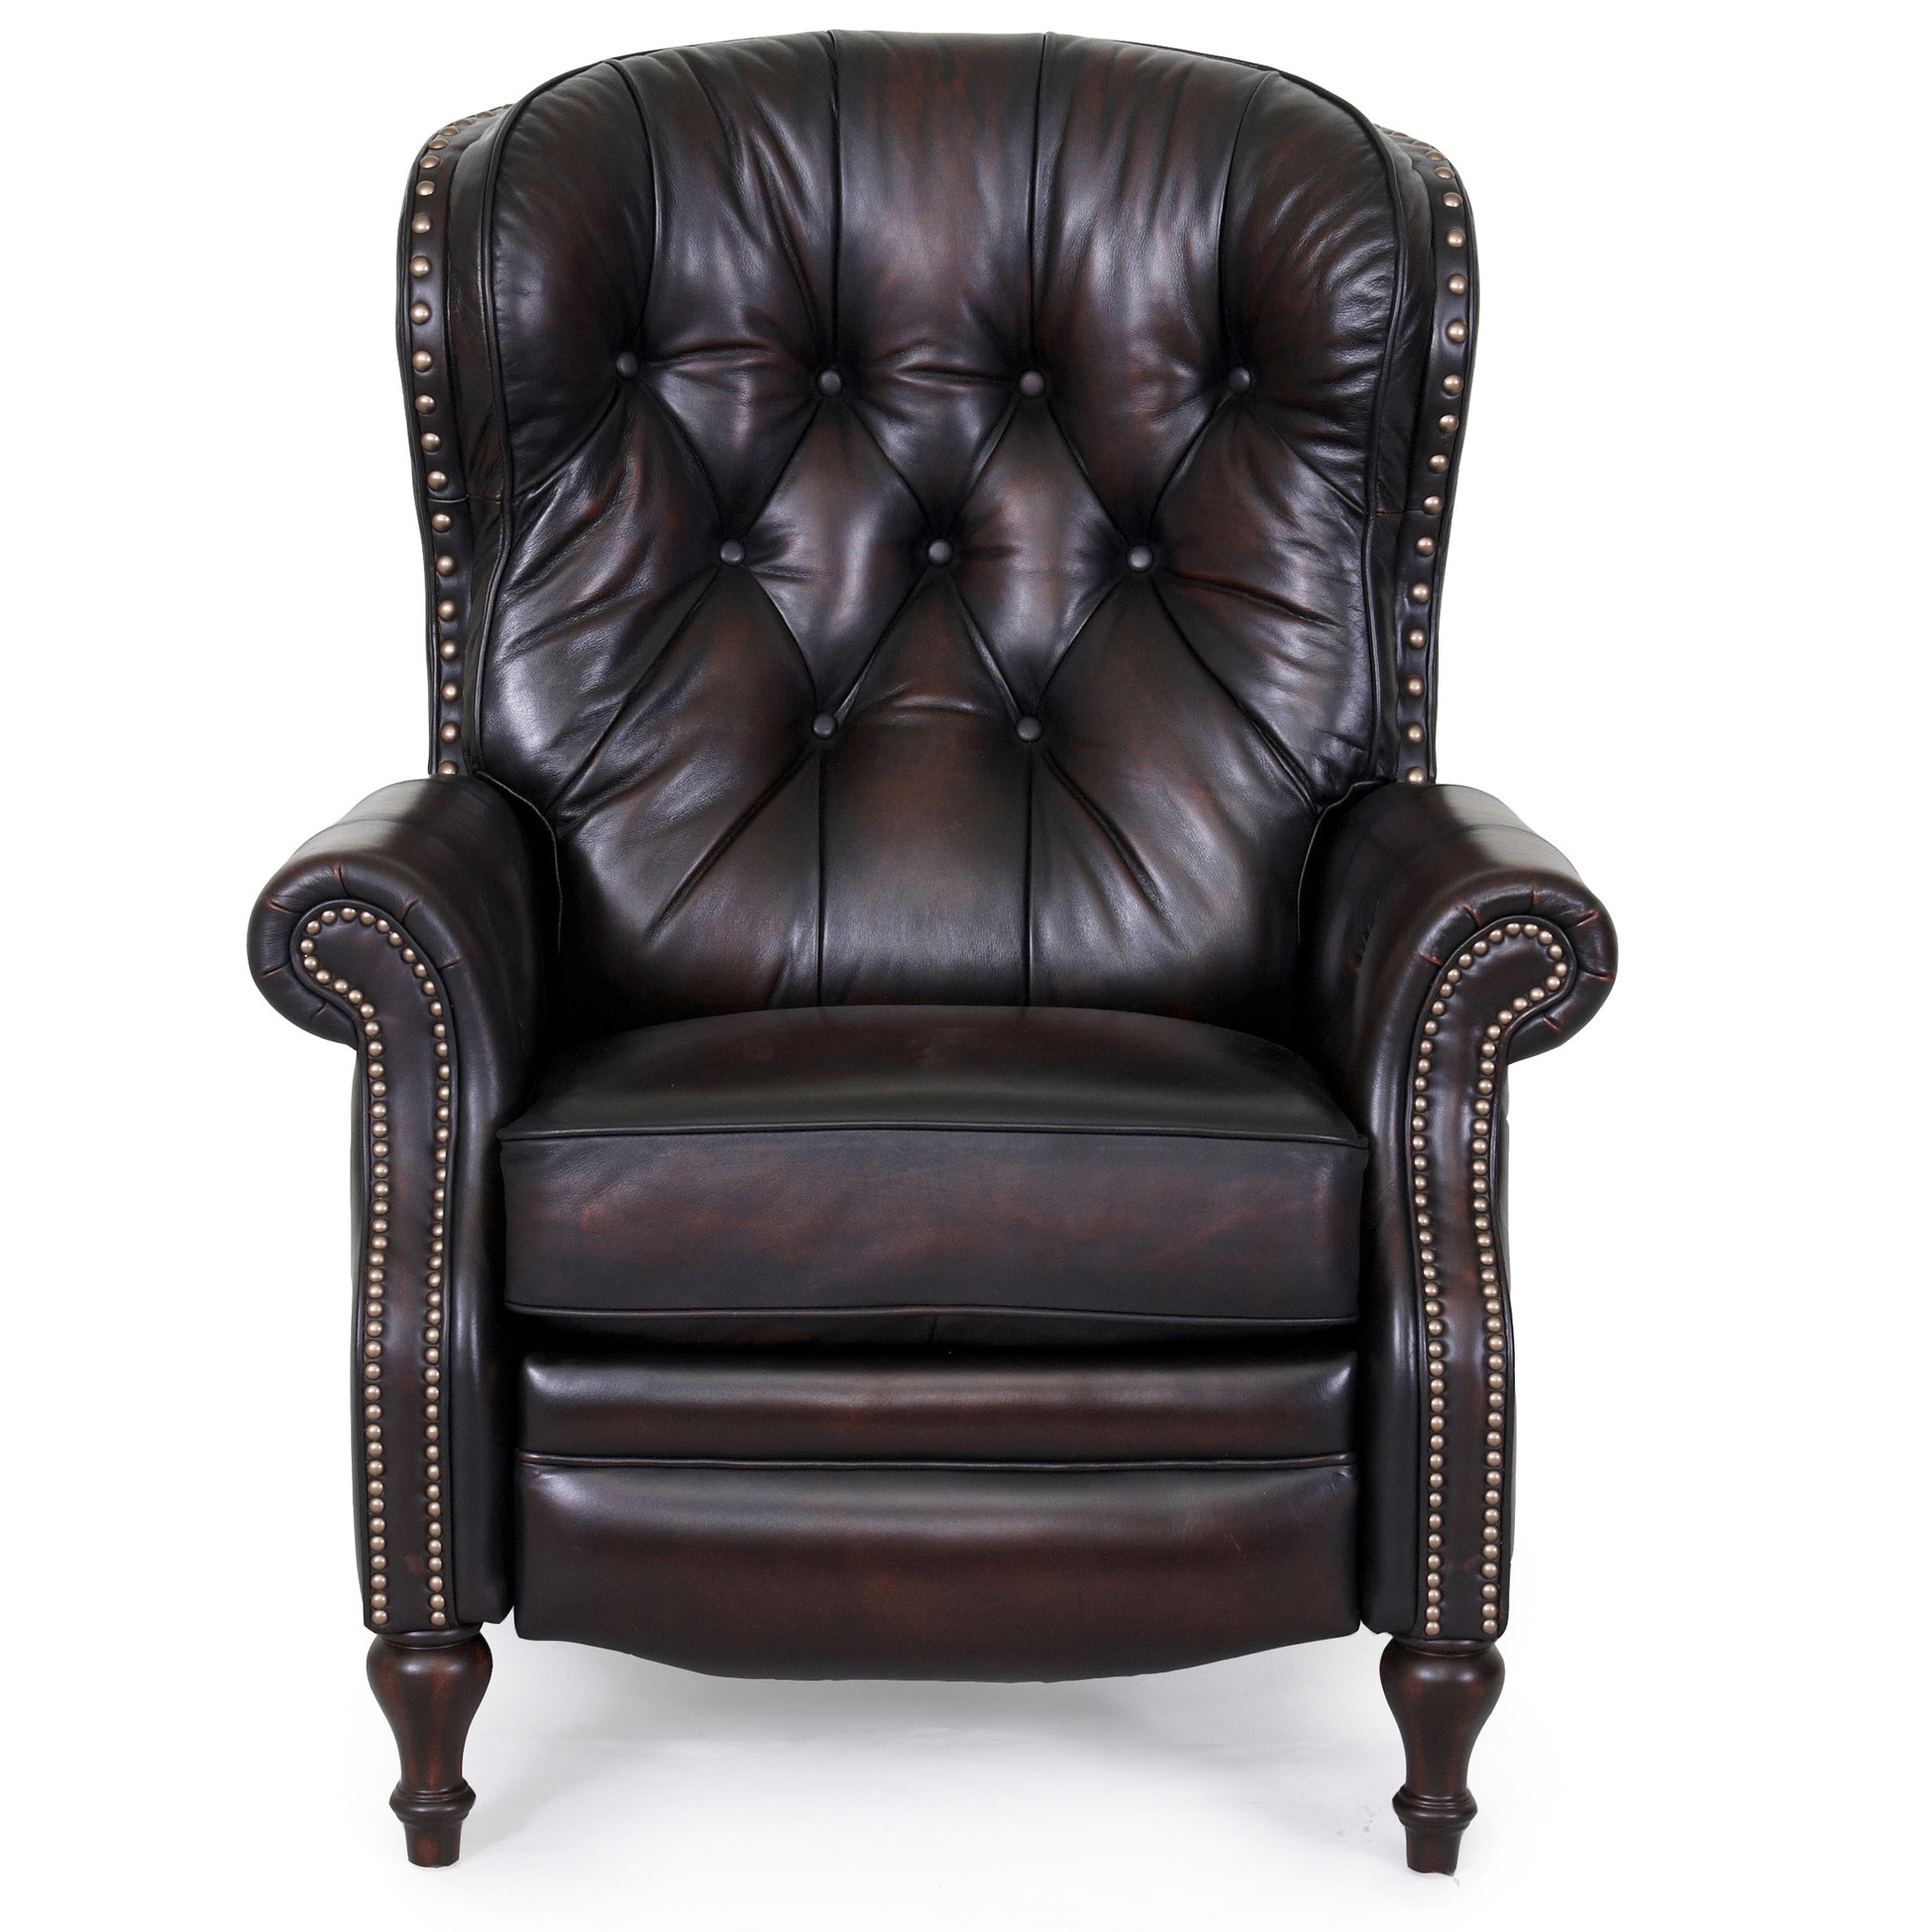 Electric Recliner Leather Chairs Barcalounger Kendall Ii Recliner Chair Leather Recliner Chair